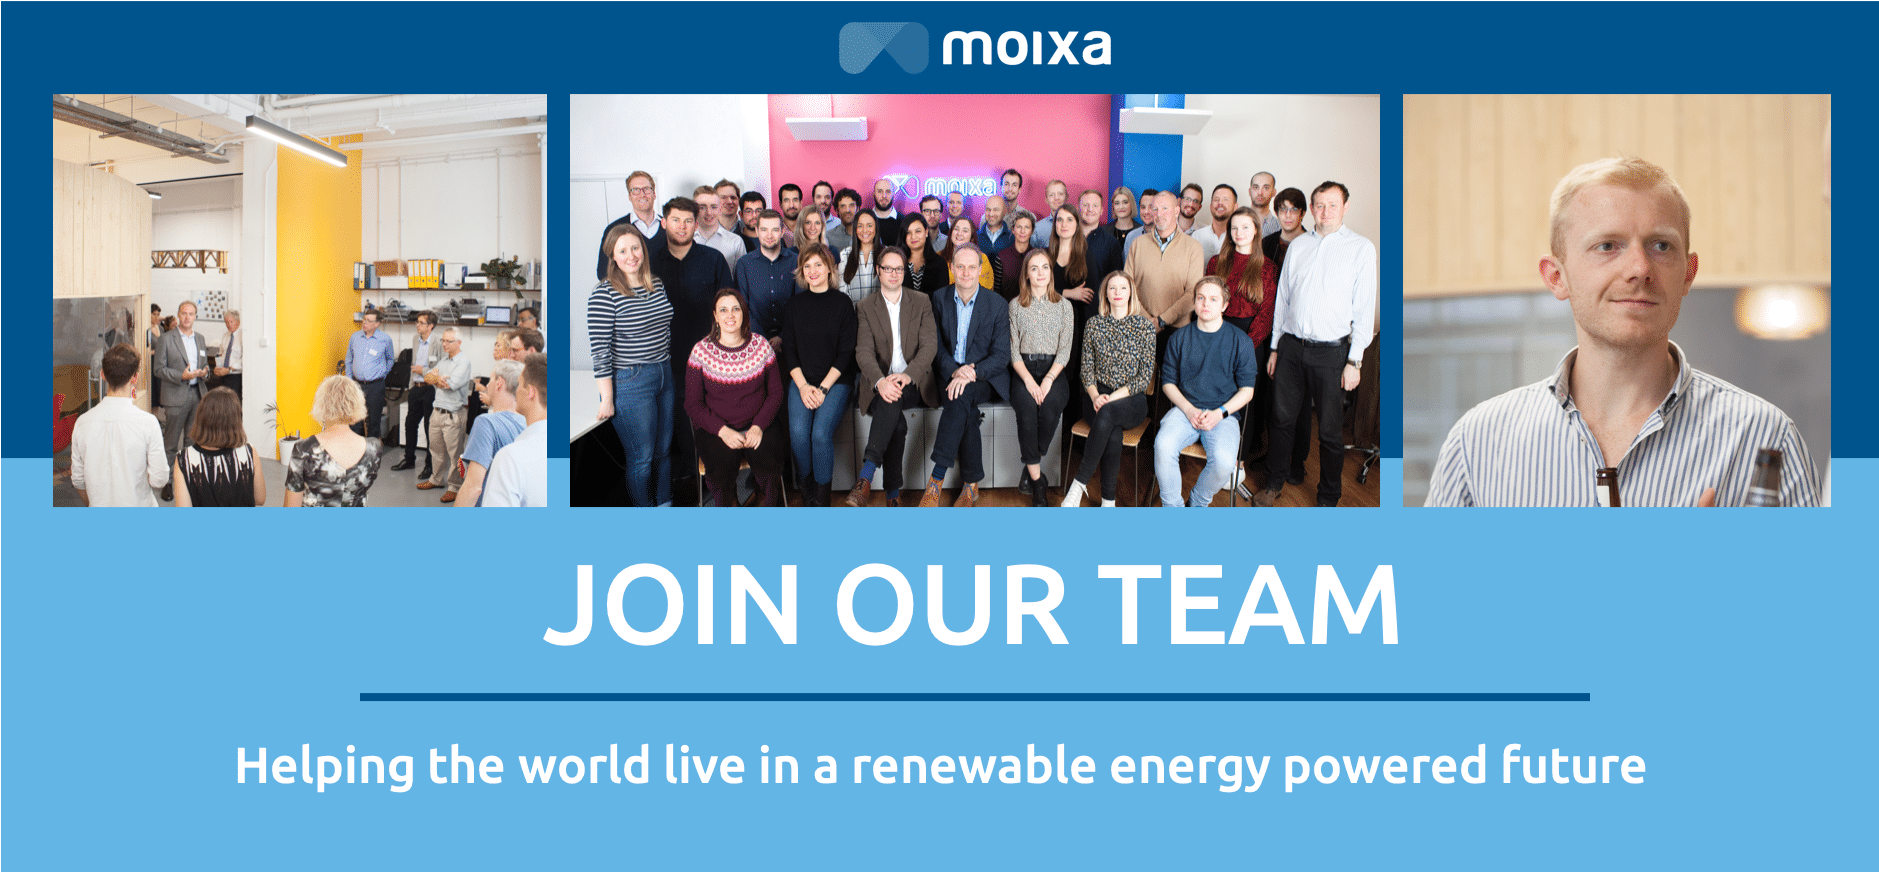 Join our team at Moixa! Help the world live in a renewable energy powered future. Three images of staff from moixa